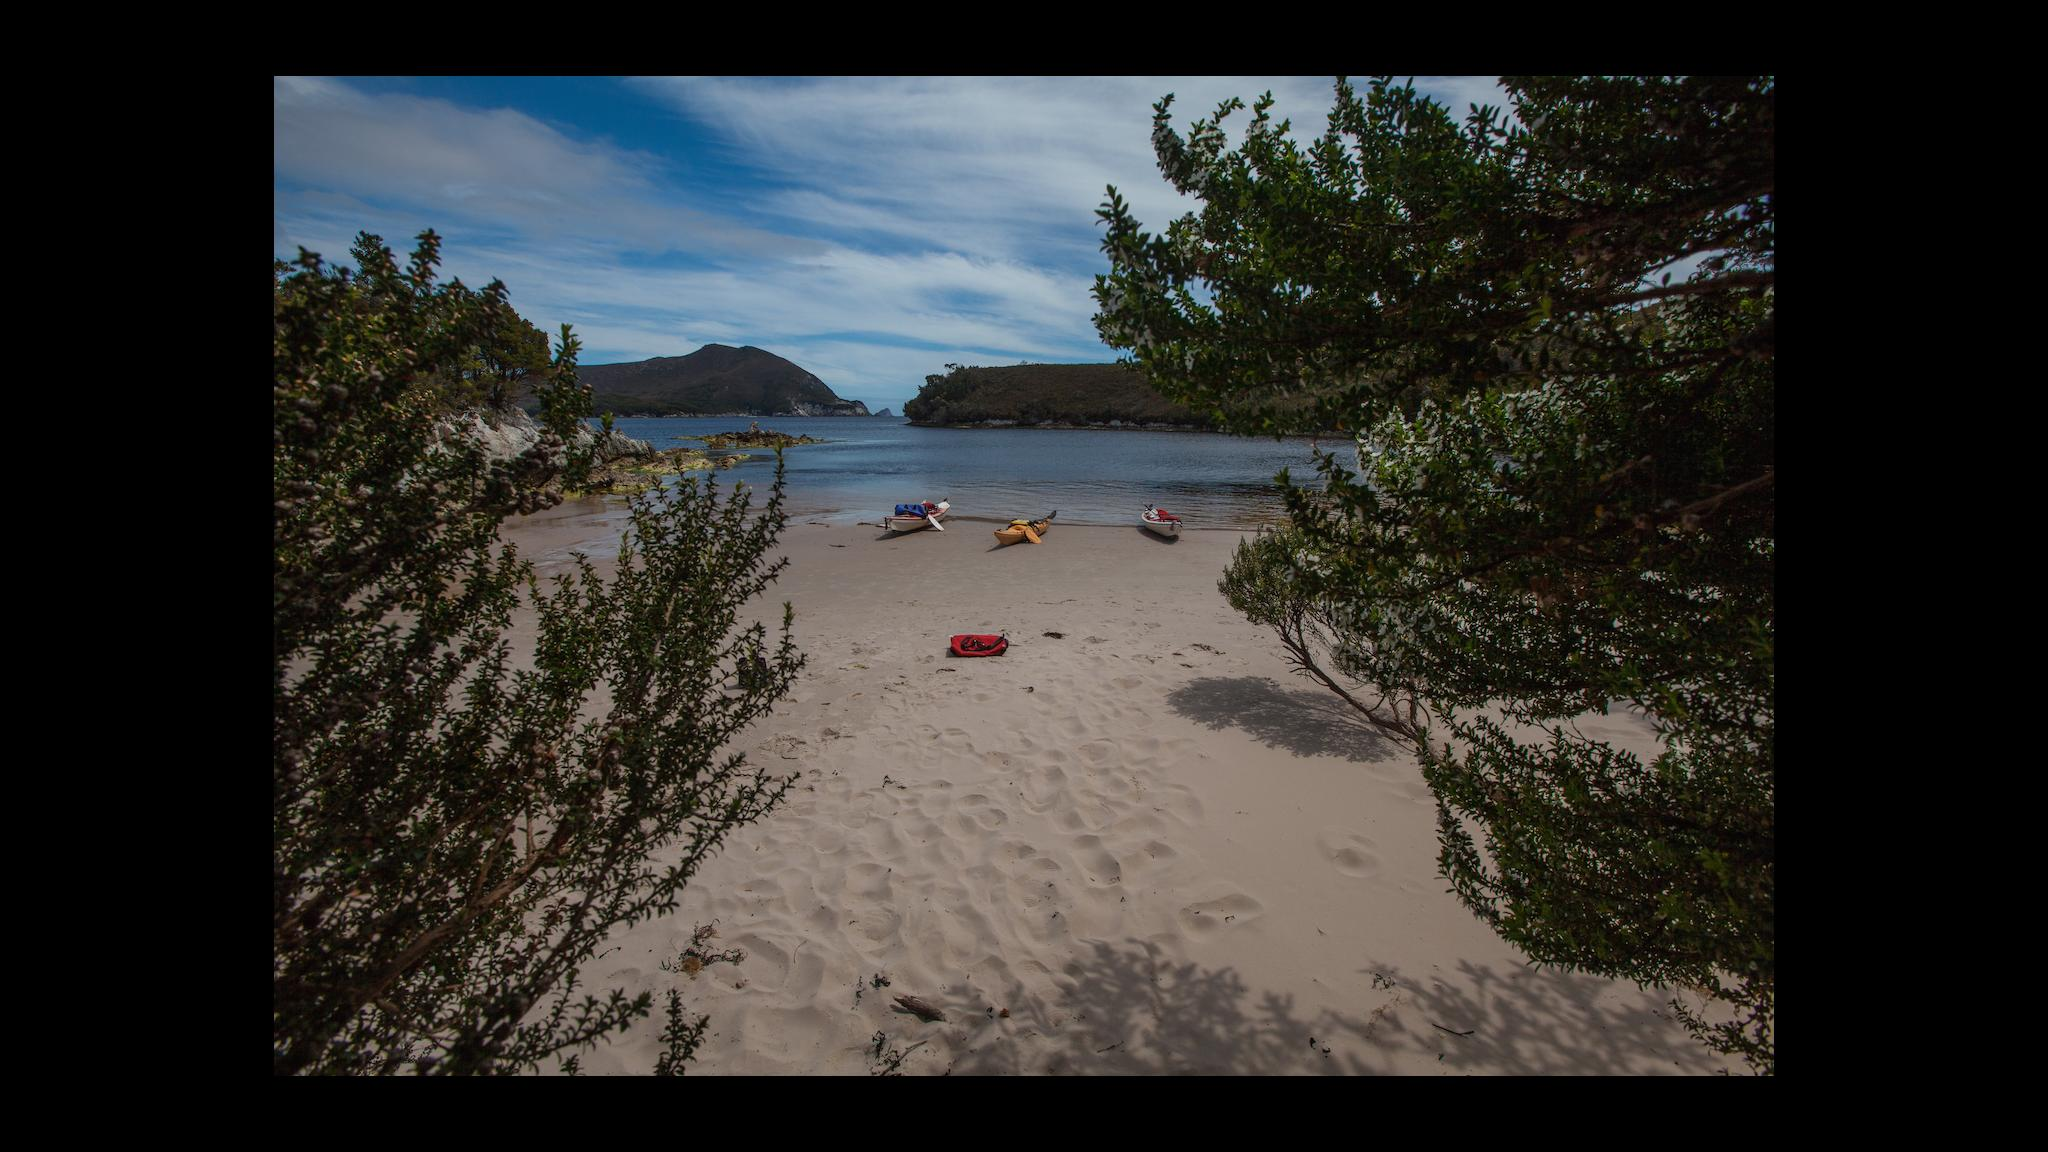 Roaring 40s Kayaking - Learning sea kayak expeditions skills will take you to remote beaches